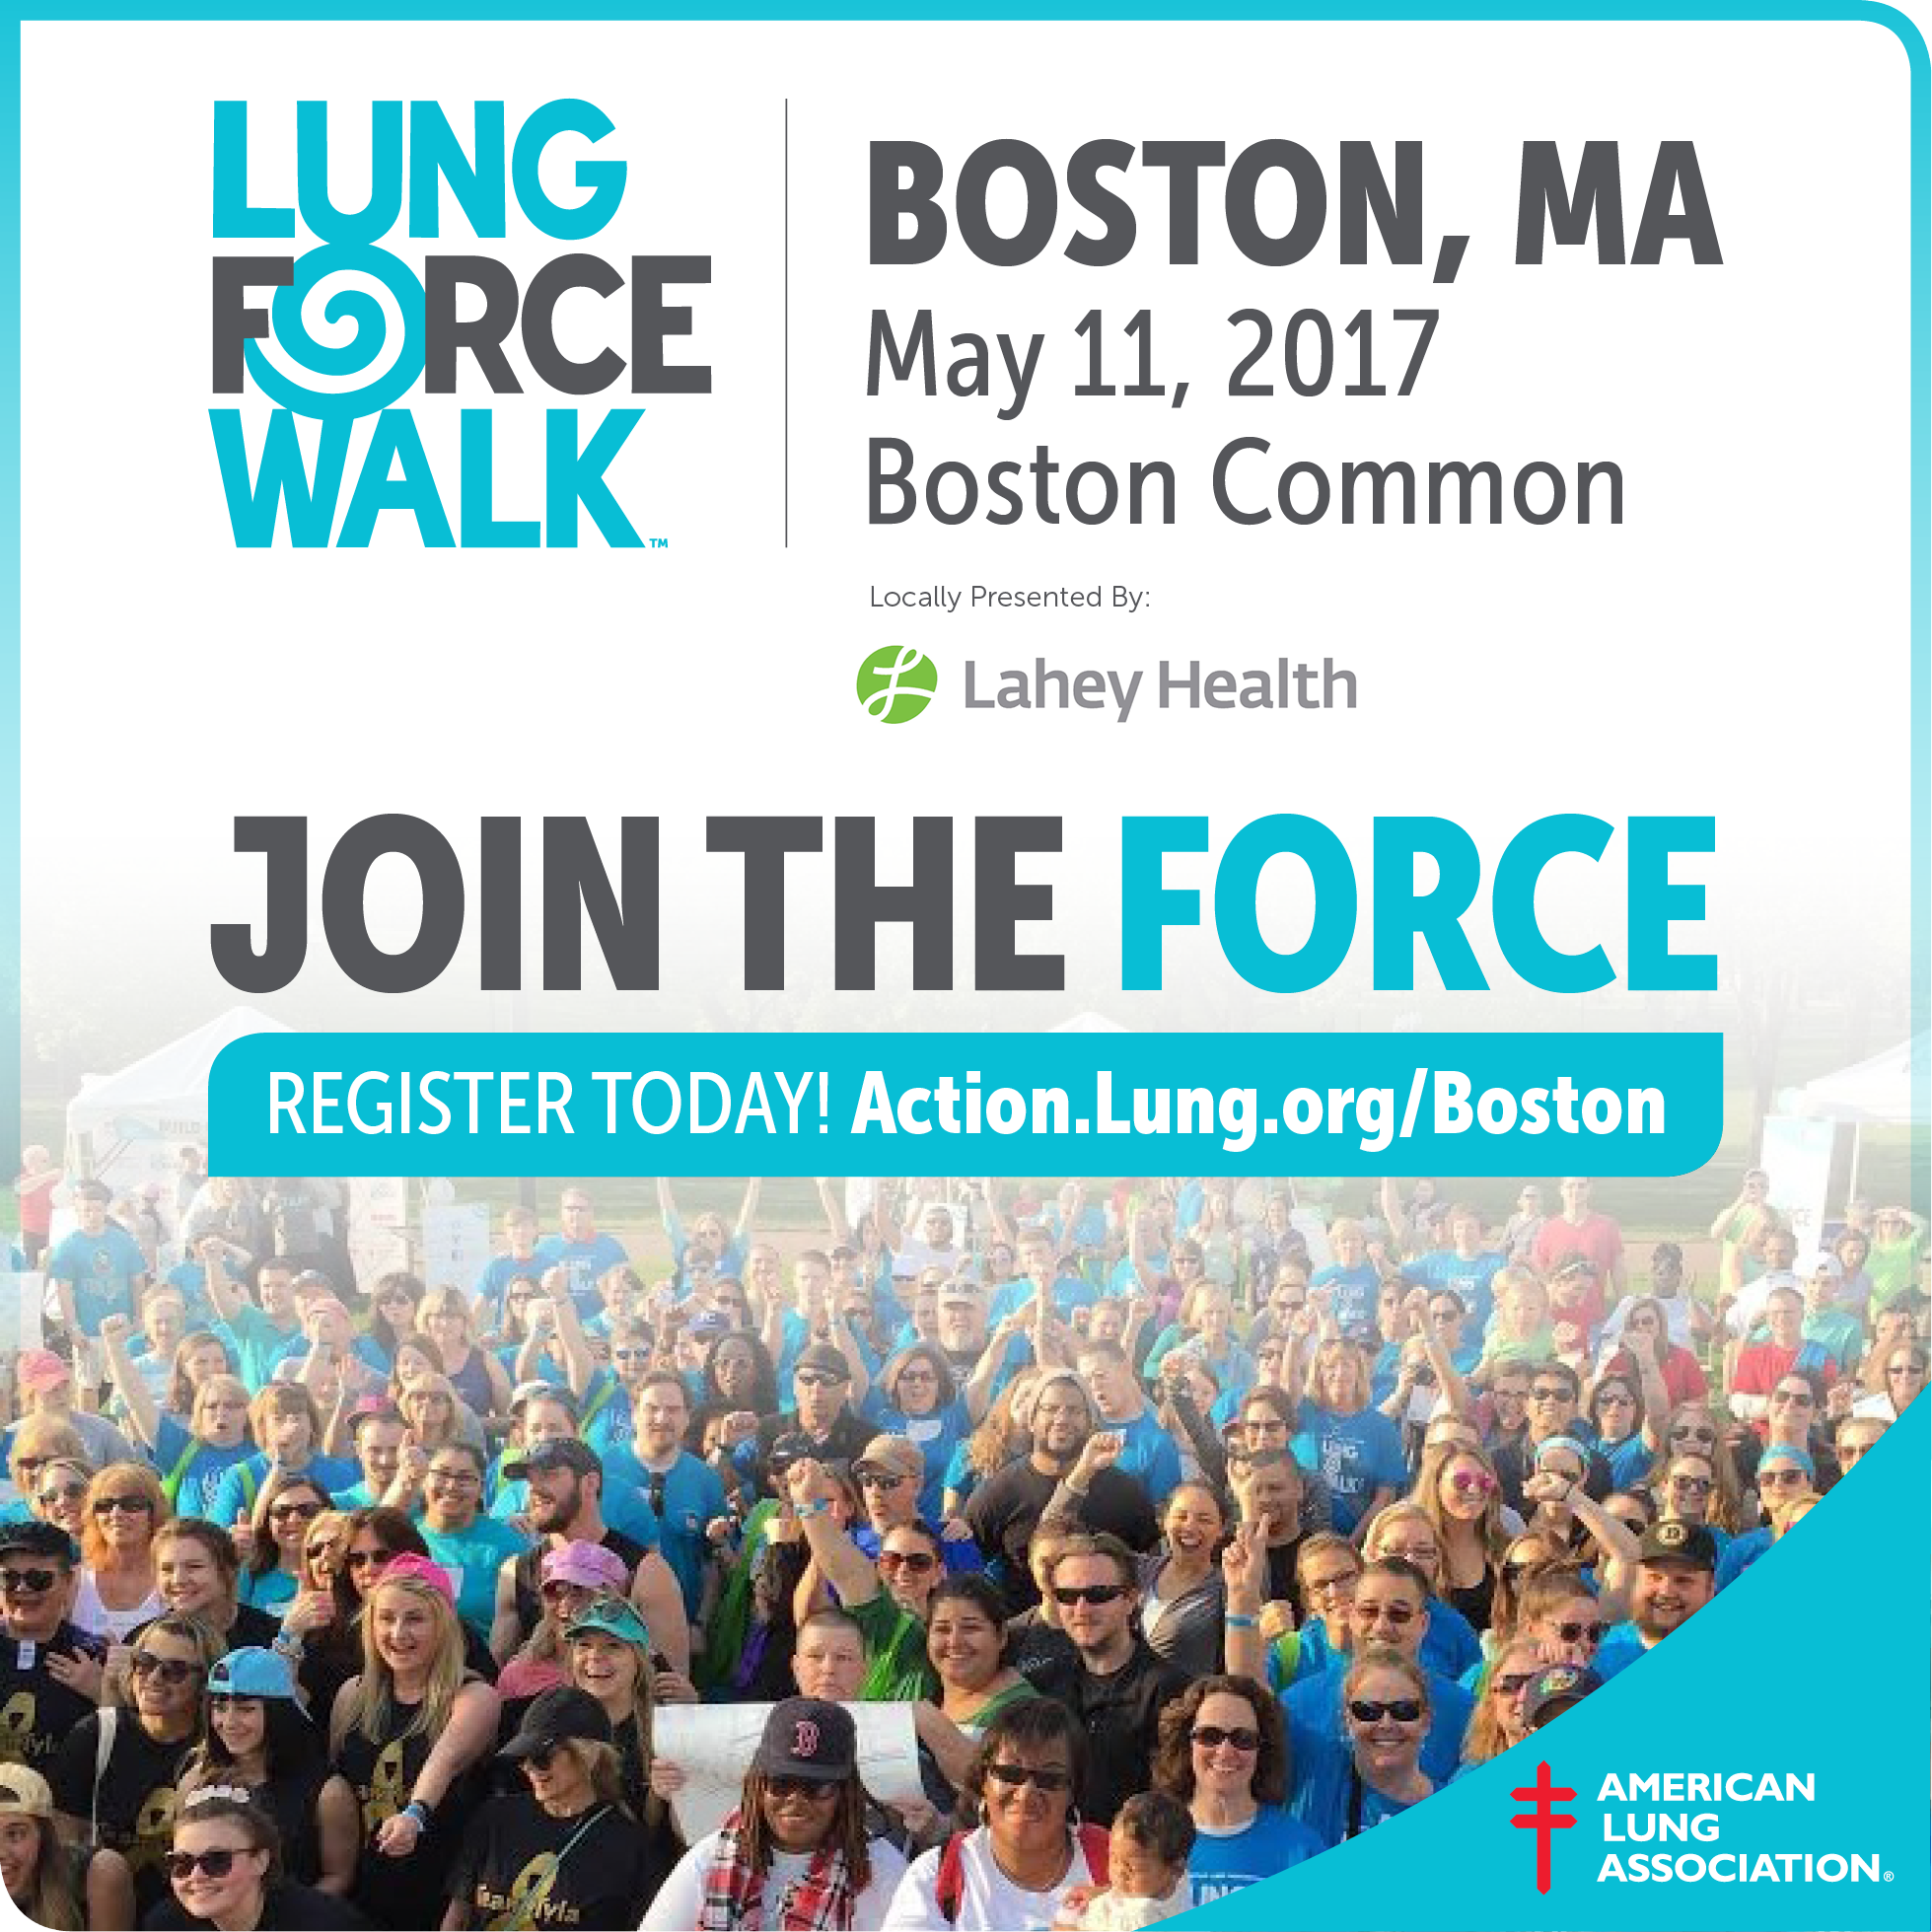 Lungforce Walk